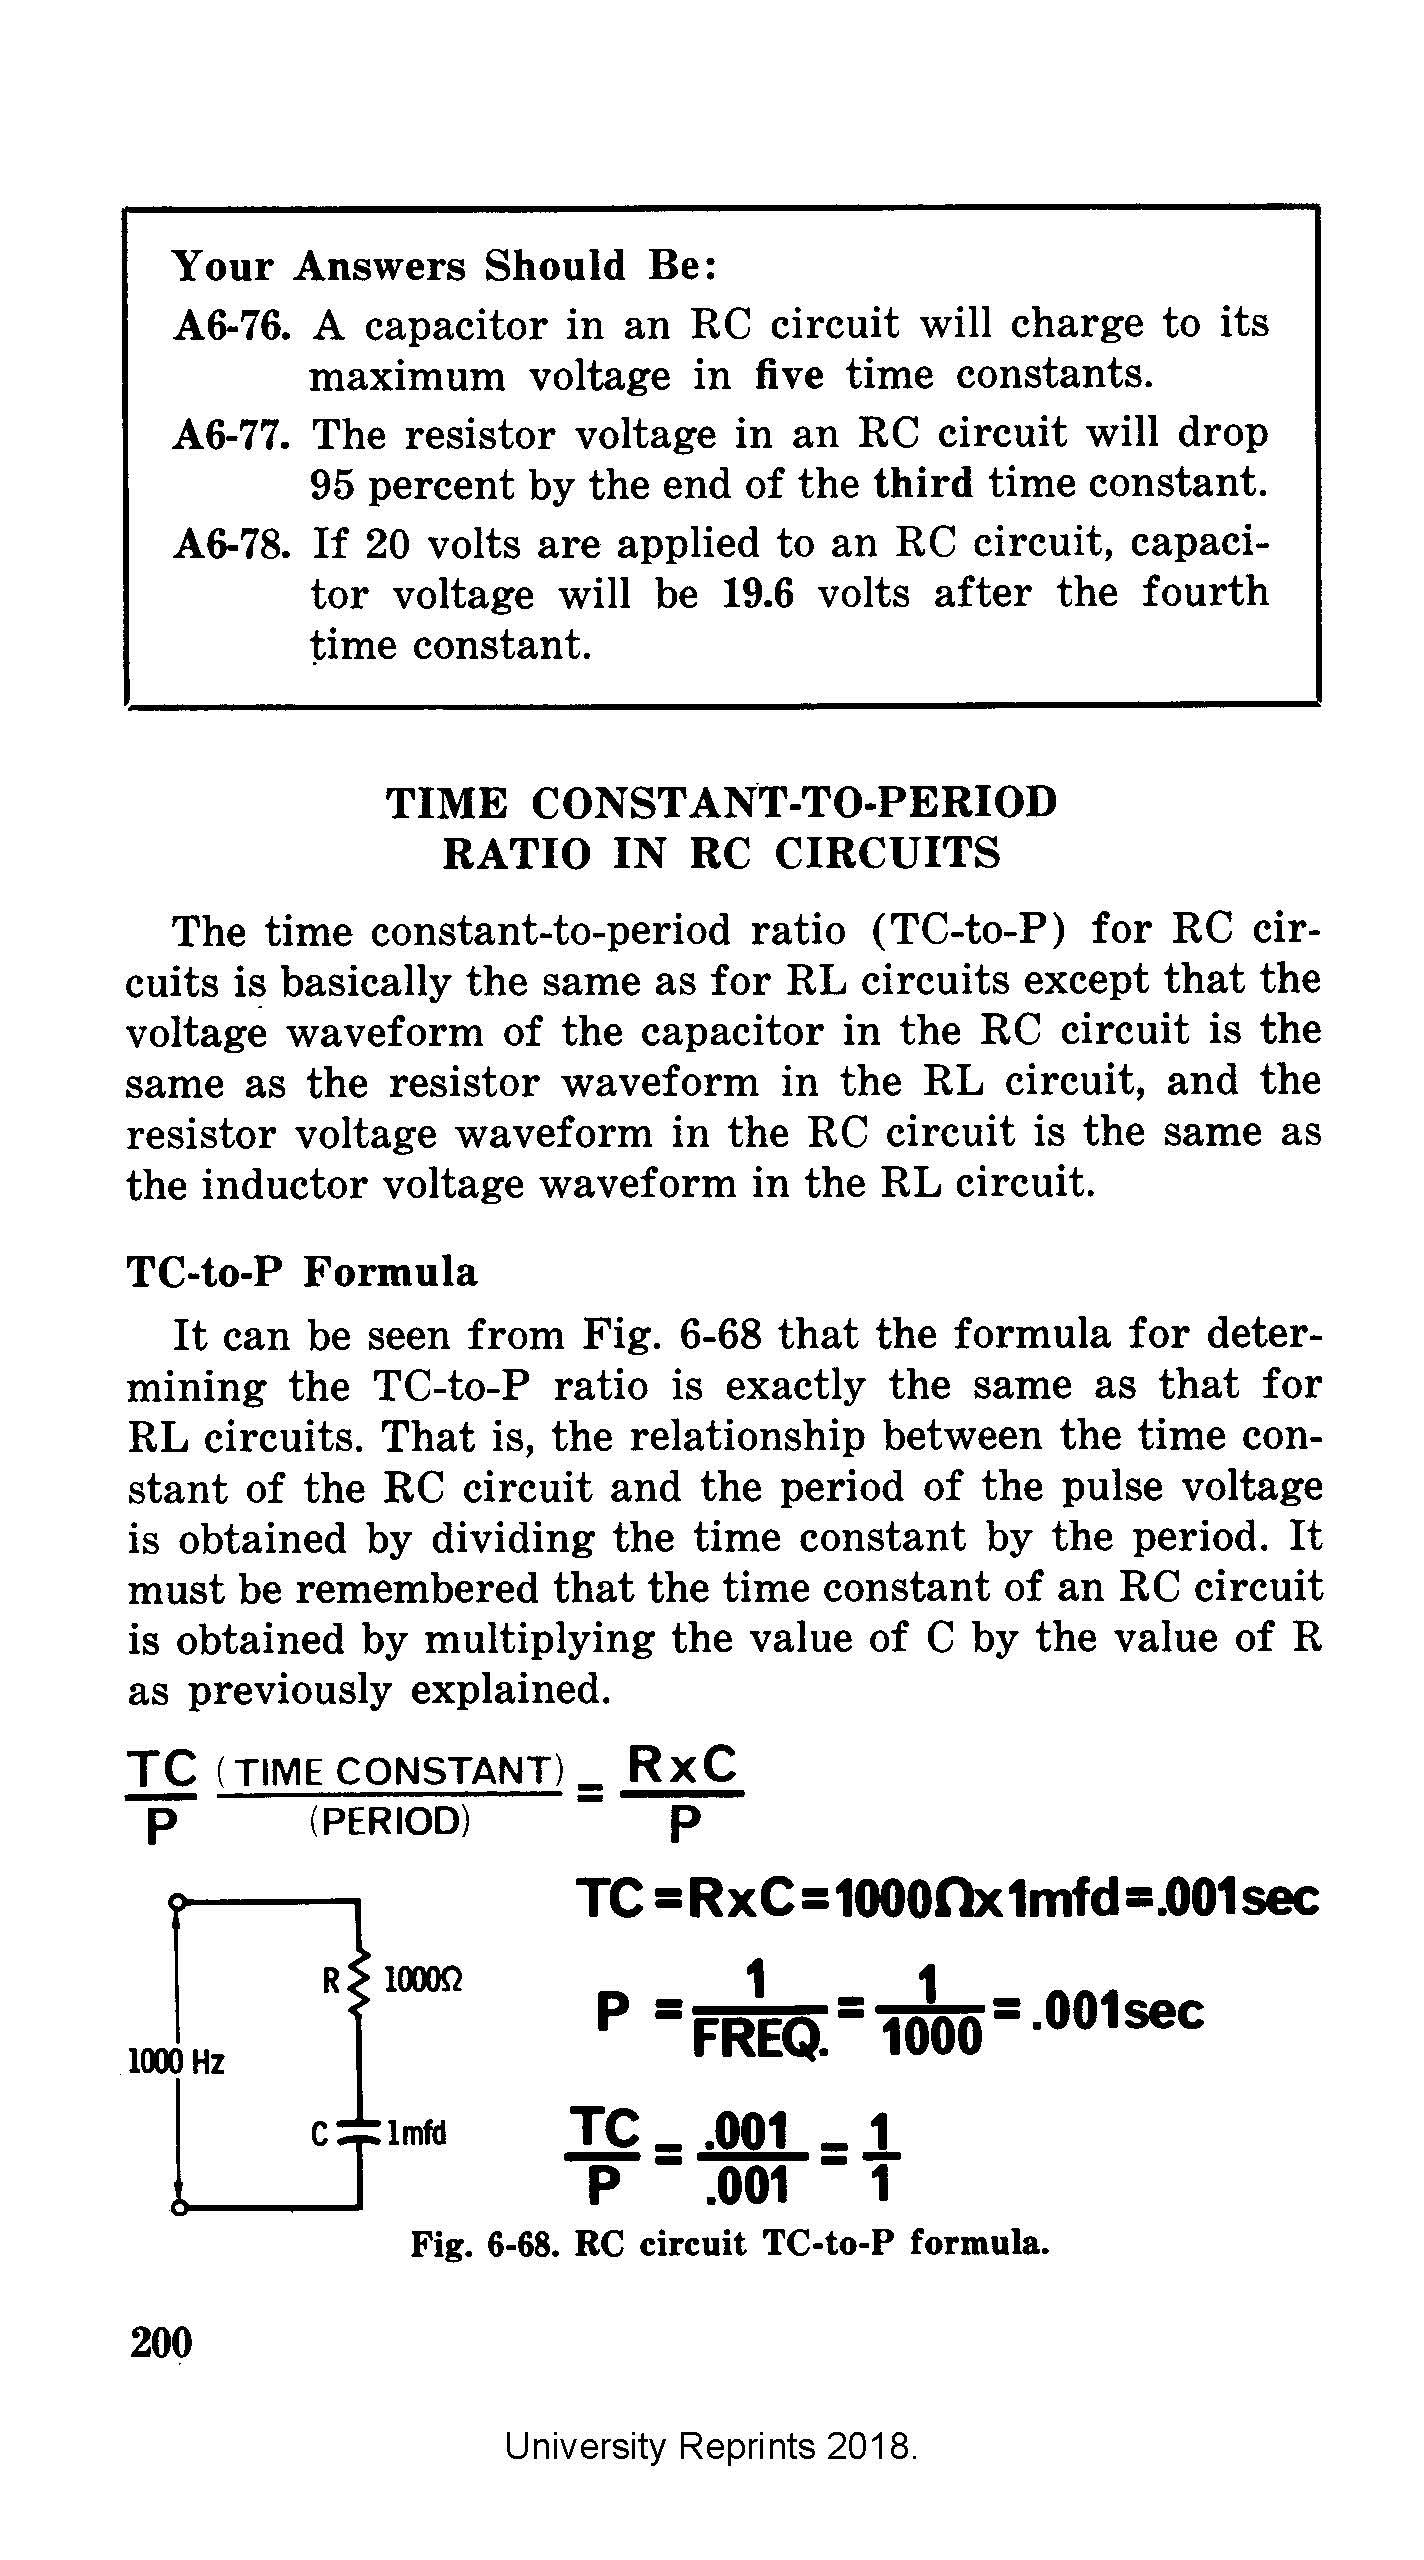 Transistor Fundamentals Volume 1 Basic Semiconductor And Circuit Calculations Rc L R Time Constants Electronics Textbook Principles A Programmed Learning Course By Robert J Brite Large Print